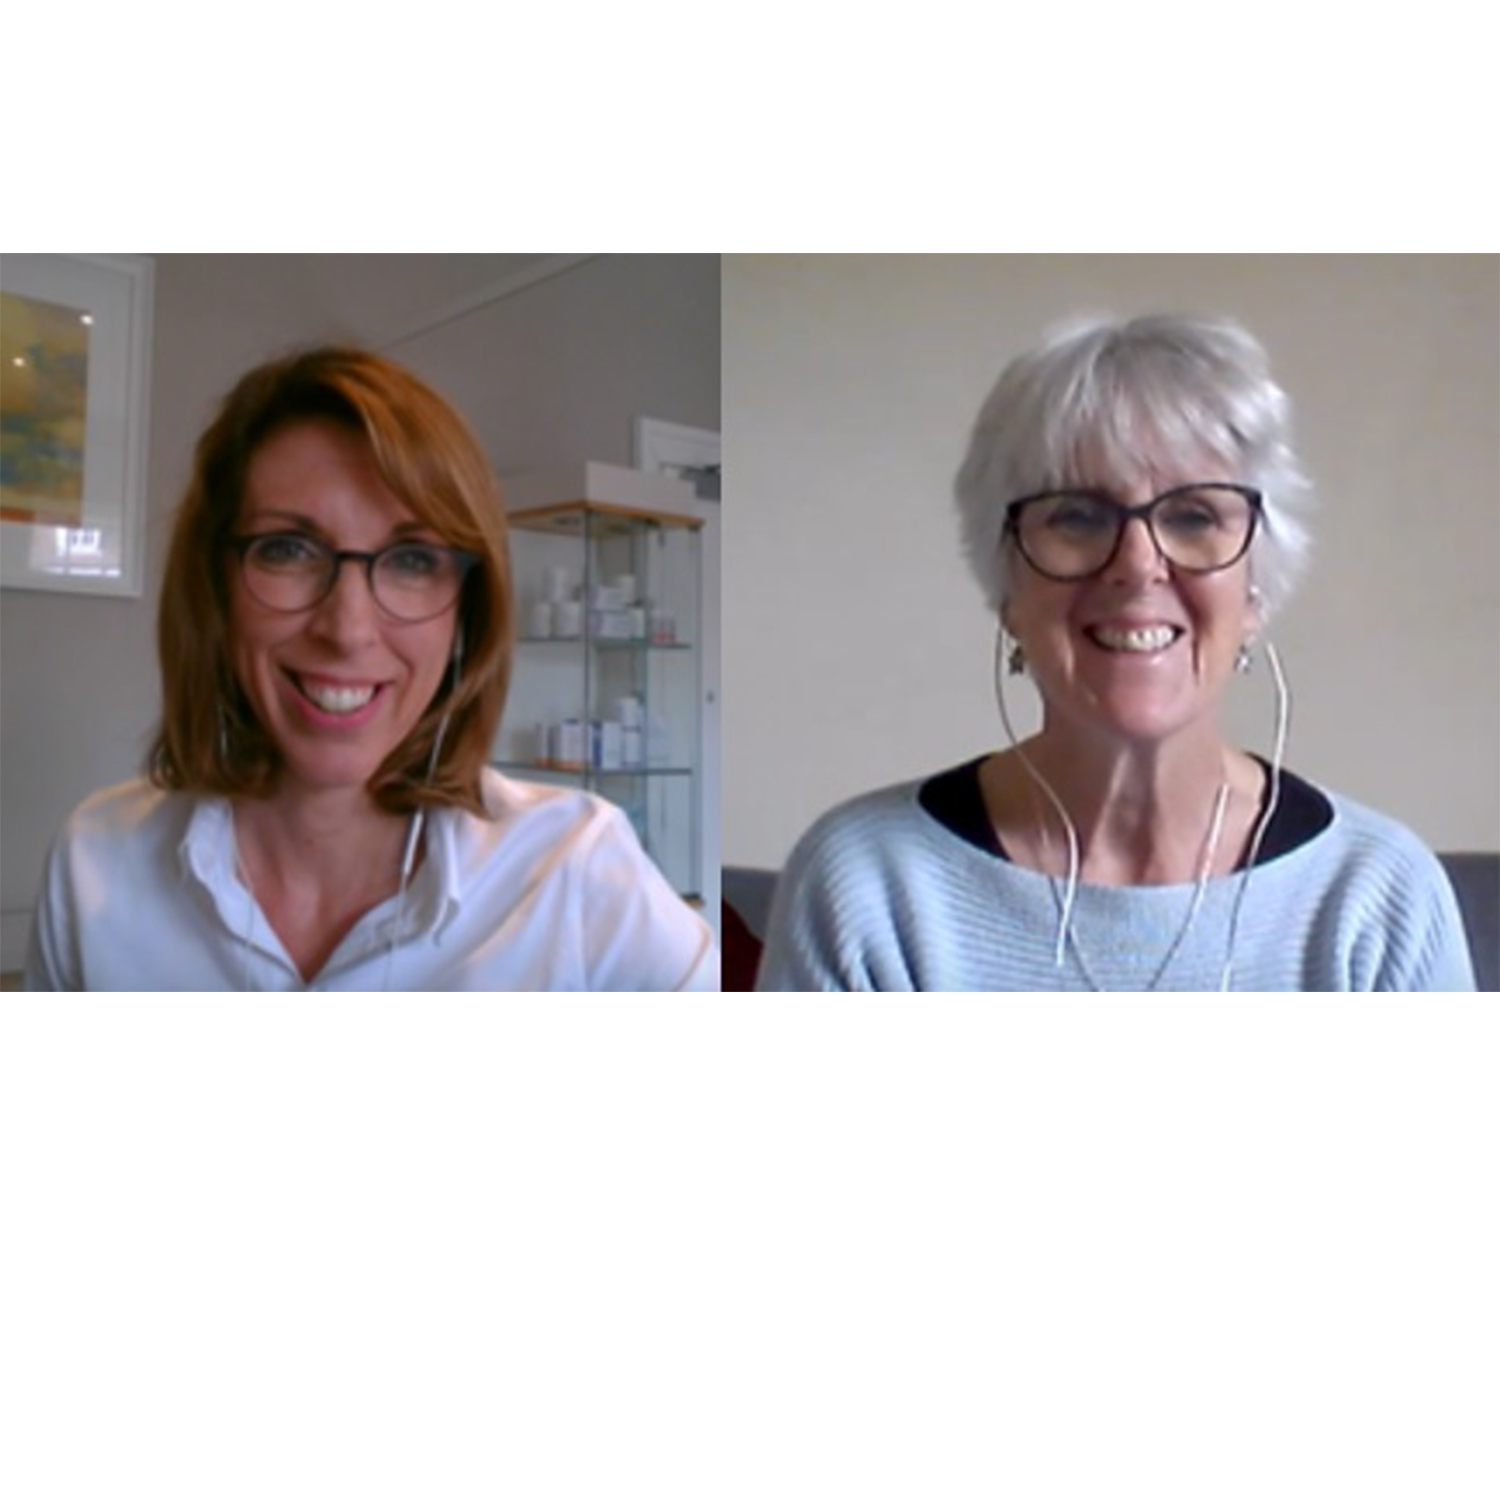 078 Urogenital Symptoms of the Menopause - Lavinia Winch & Dr Louise Newson